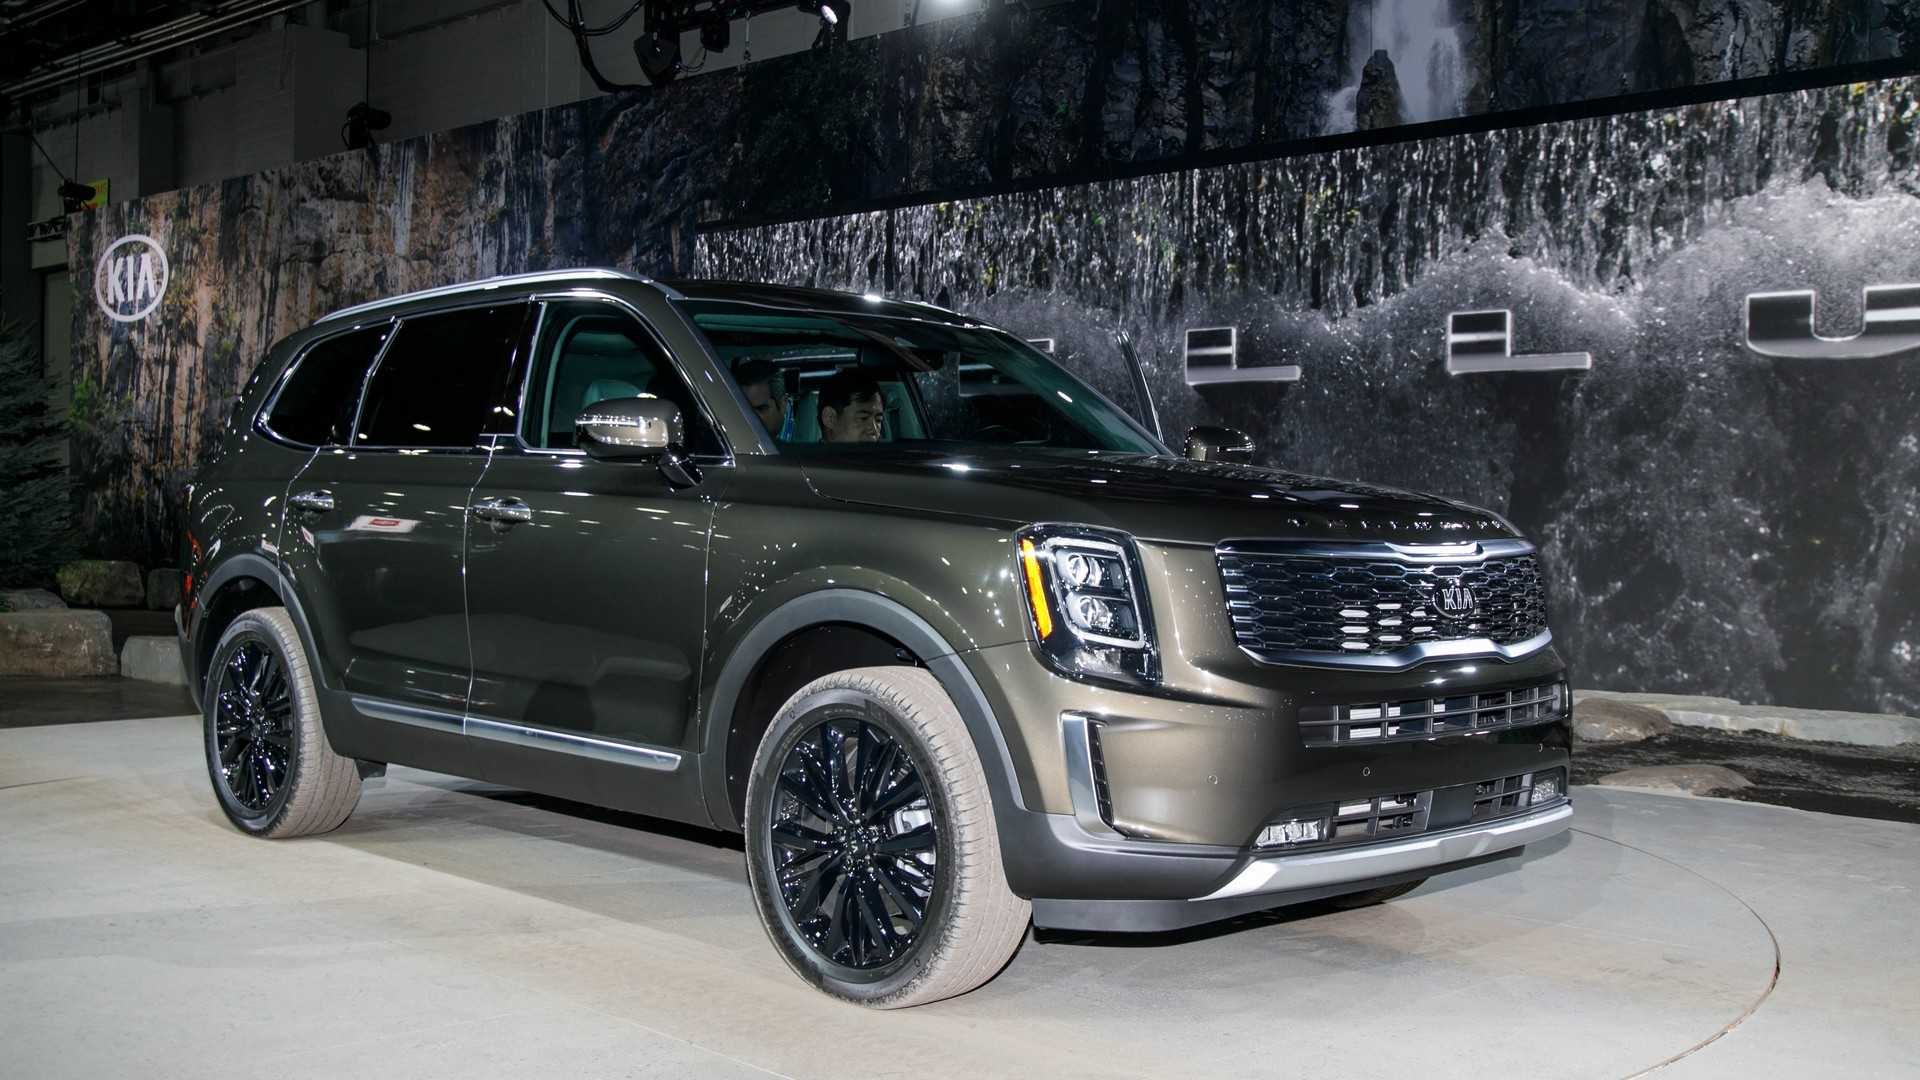 85 The 2020 Kia Telluride Trim Levels Redesign for 2020 Kia Telluride Trim Levels